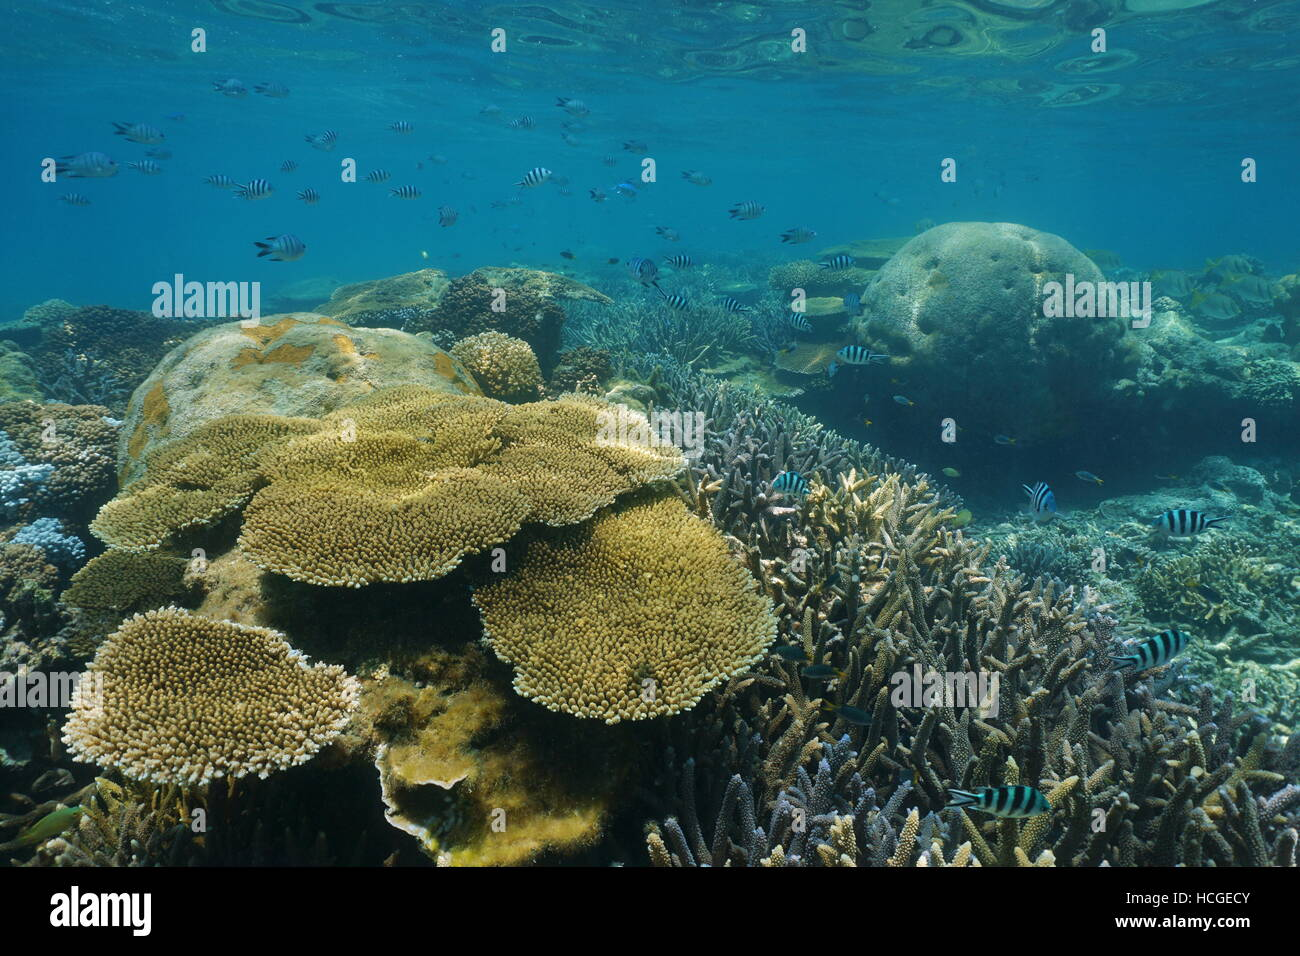 Underwater coral reef with scissortail sergeant fish, New Caledonia, south Pacific ocean - Stock Image